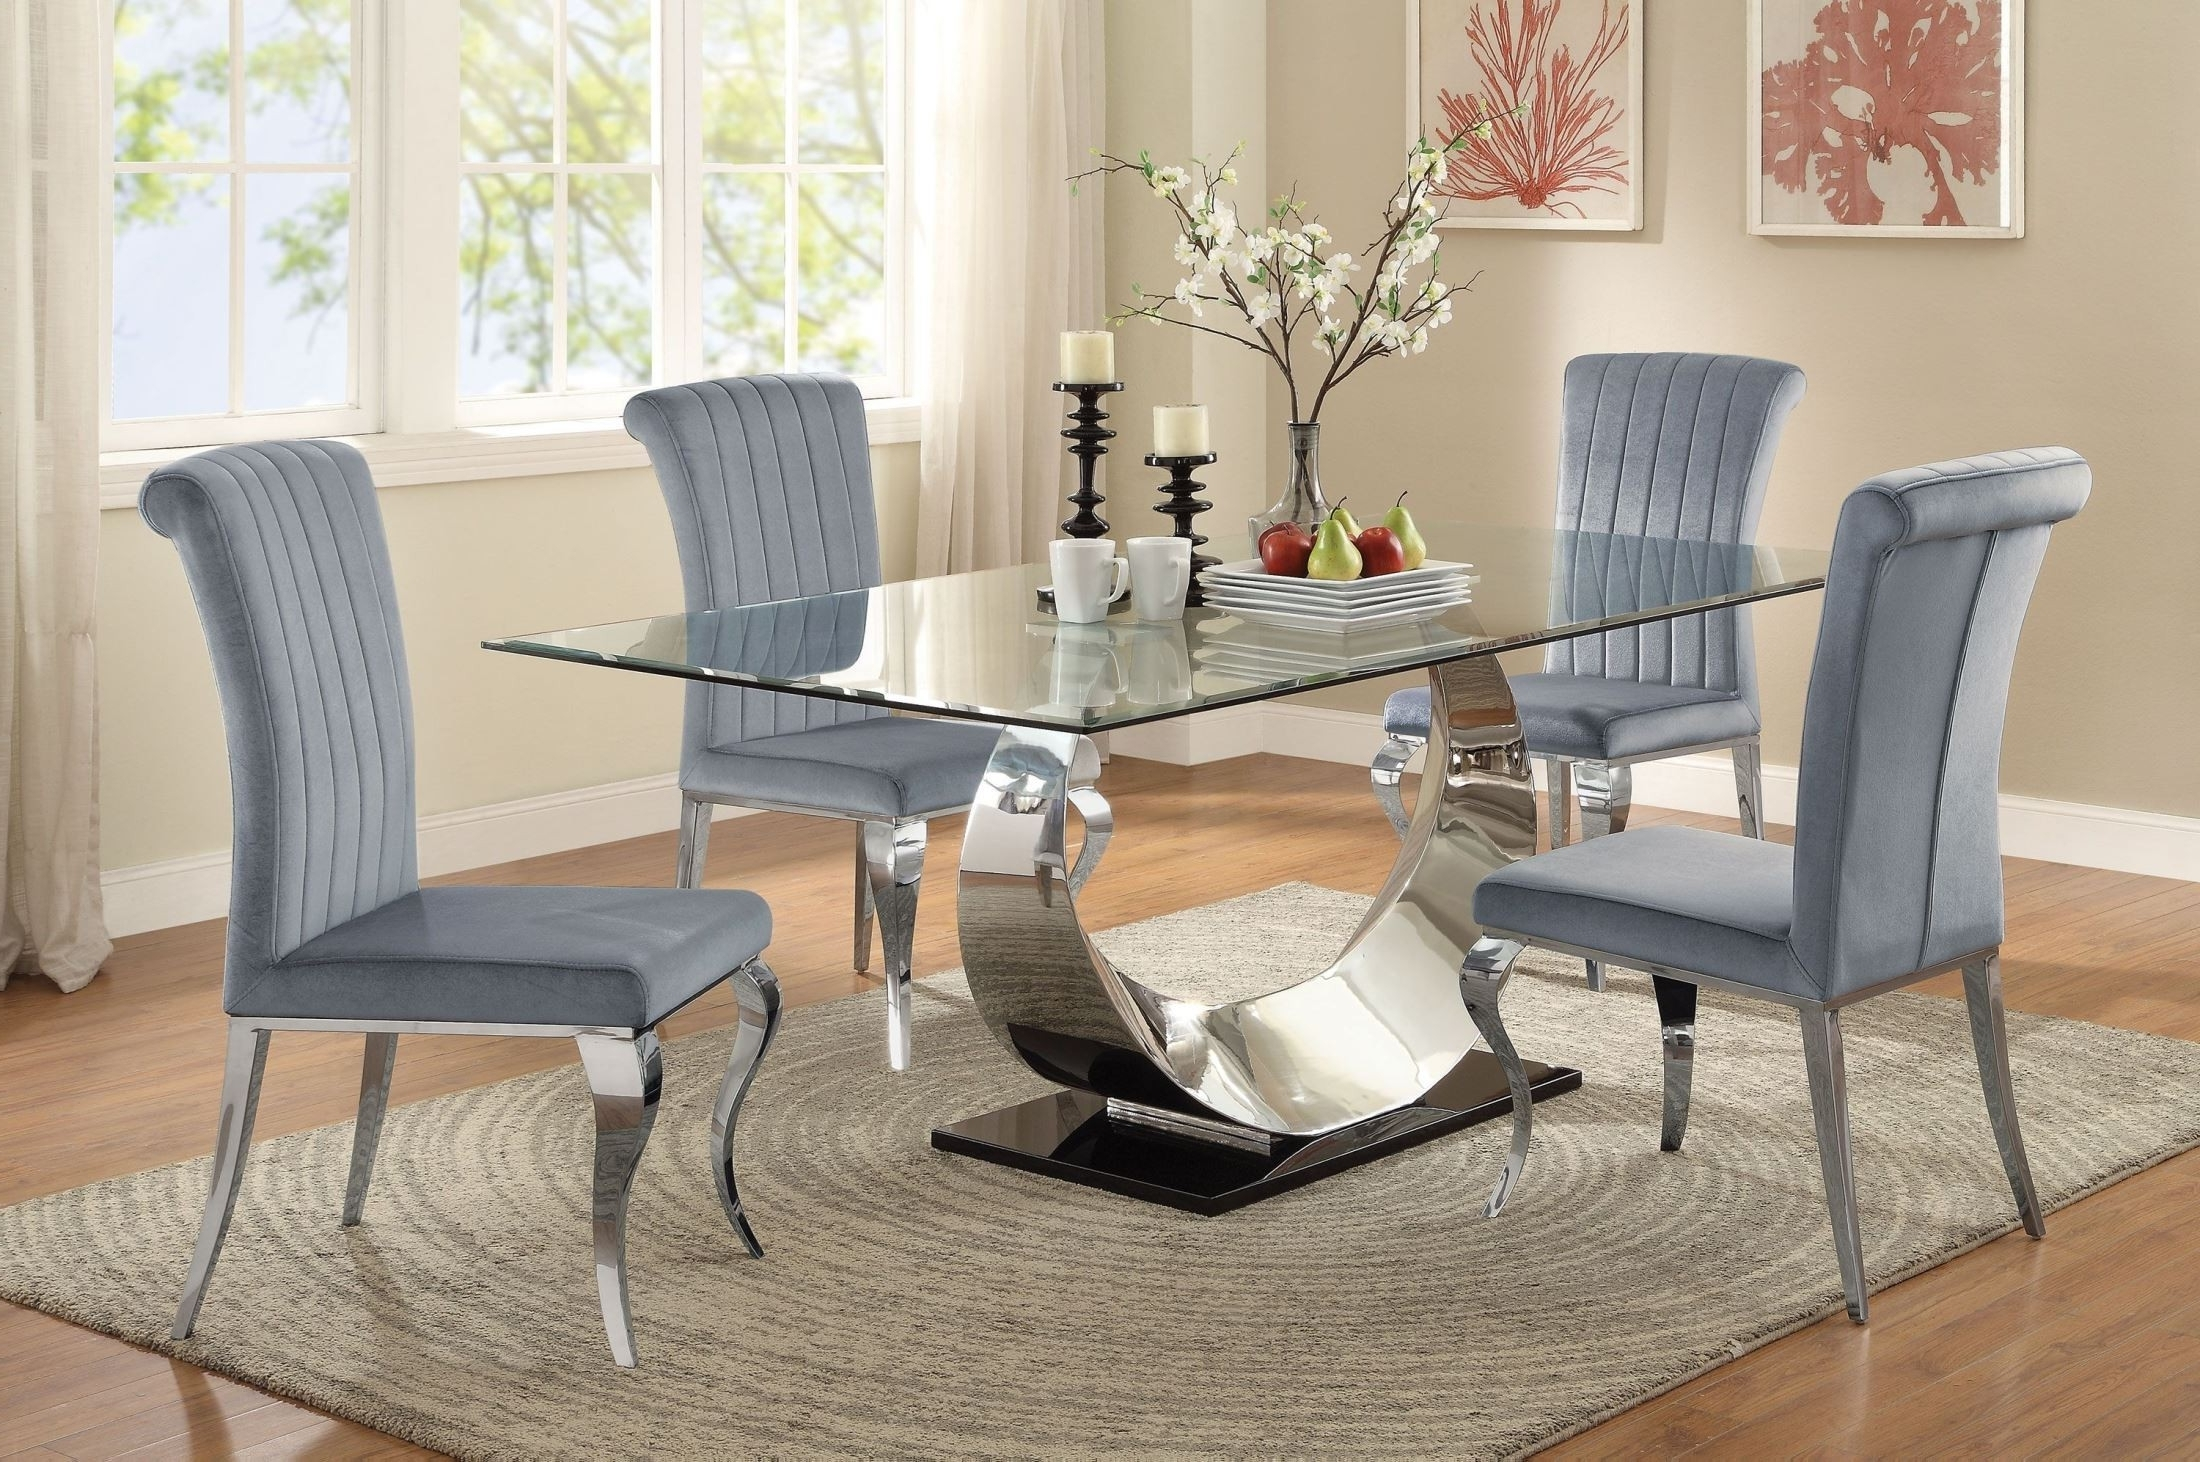 Chrome Dining Tables And Chairs With Regard To Well Known Coaster Manessier Chrome Dining Room Set – Manessier Collection:  (View 5 of 25)